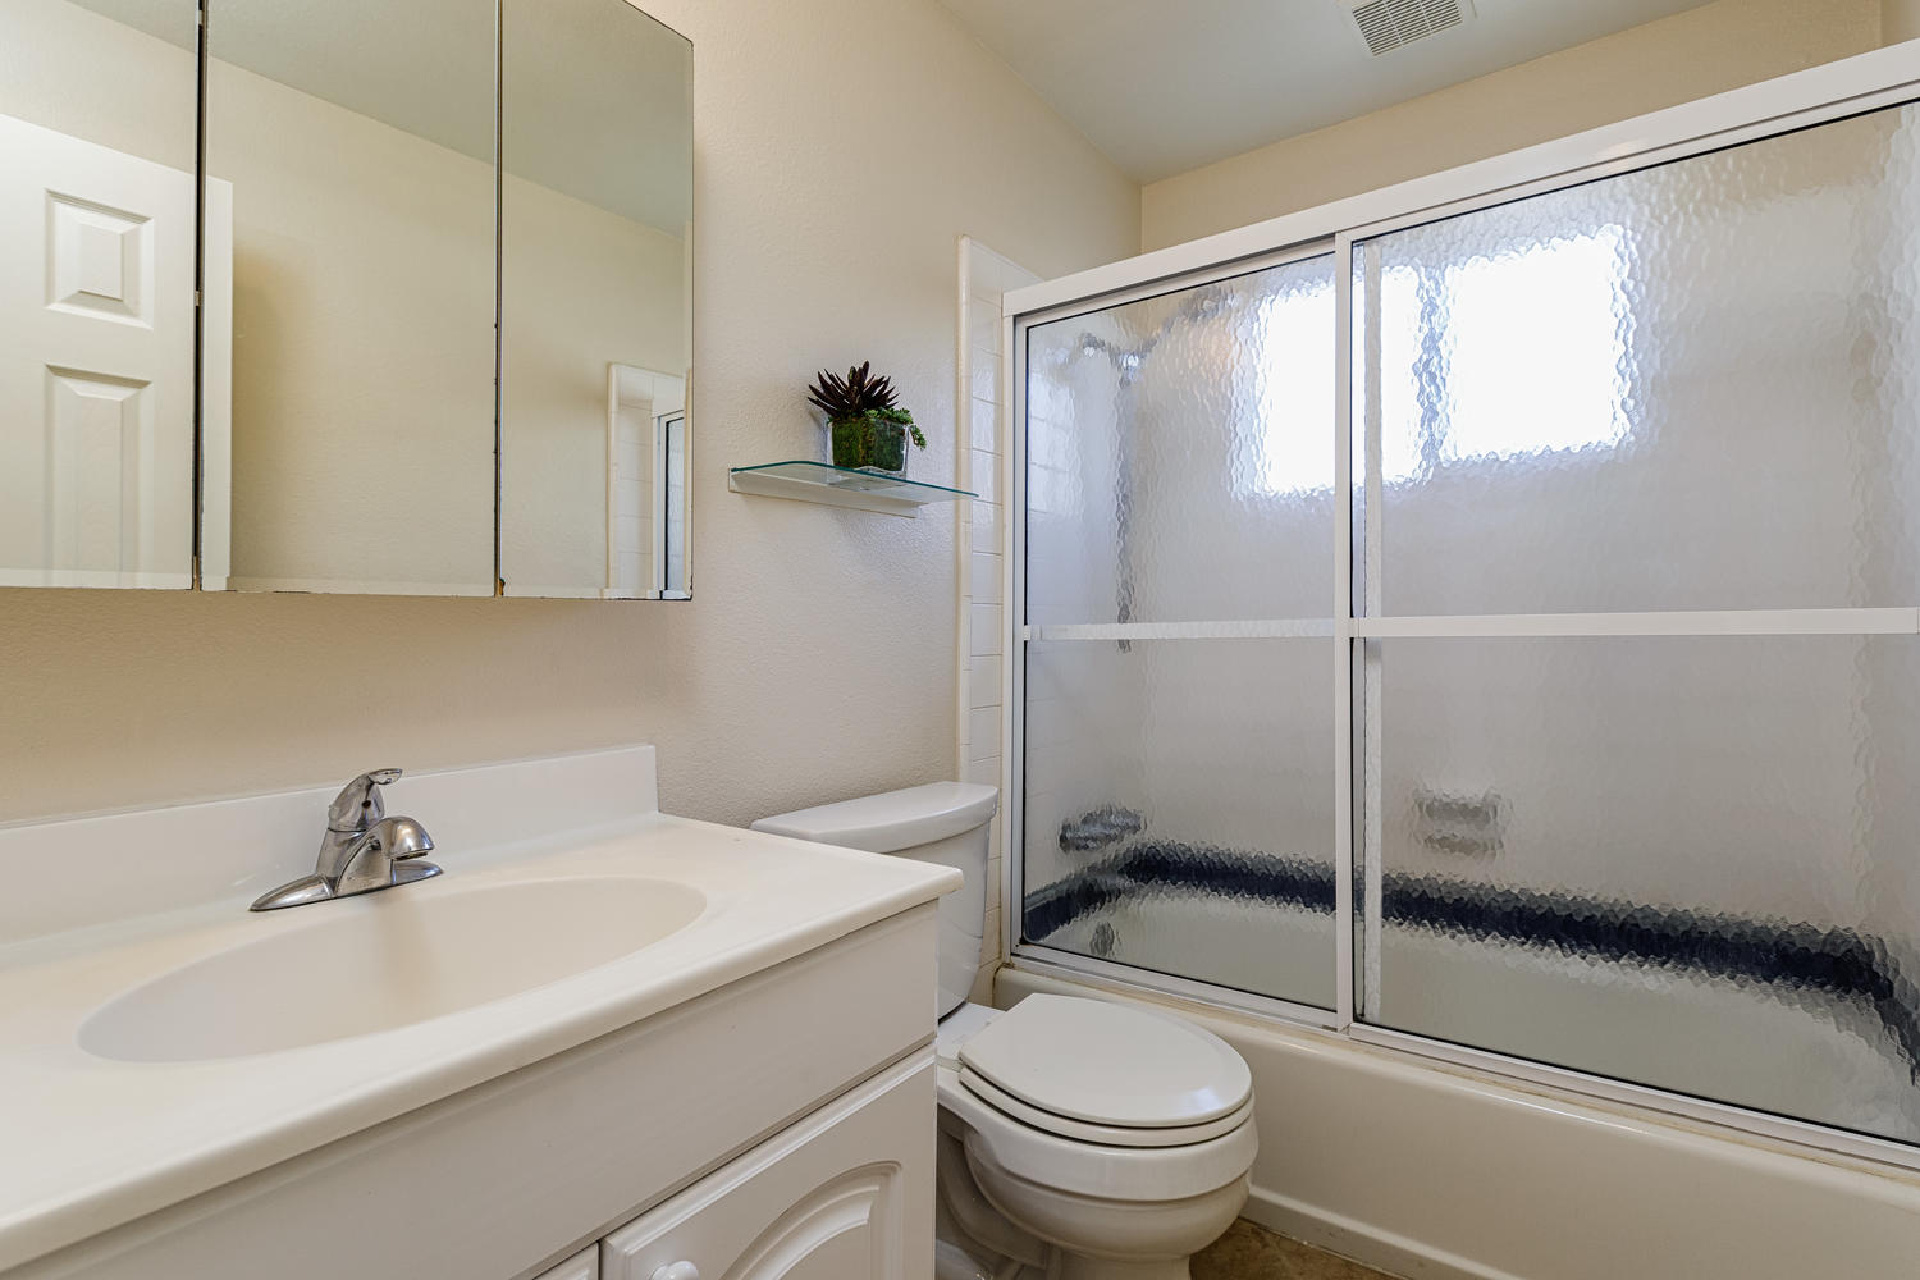 http://addressrealestate.com/media/images/blogs/38/2/b_10-1408-ocean-dr-oxnard-ca-93035-mls-size-018-30-bathroom-1-1500x1000-72dpi.jpg